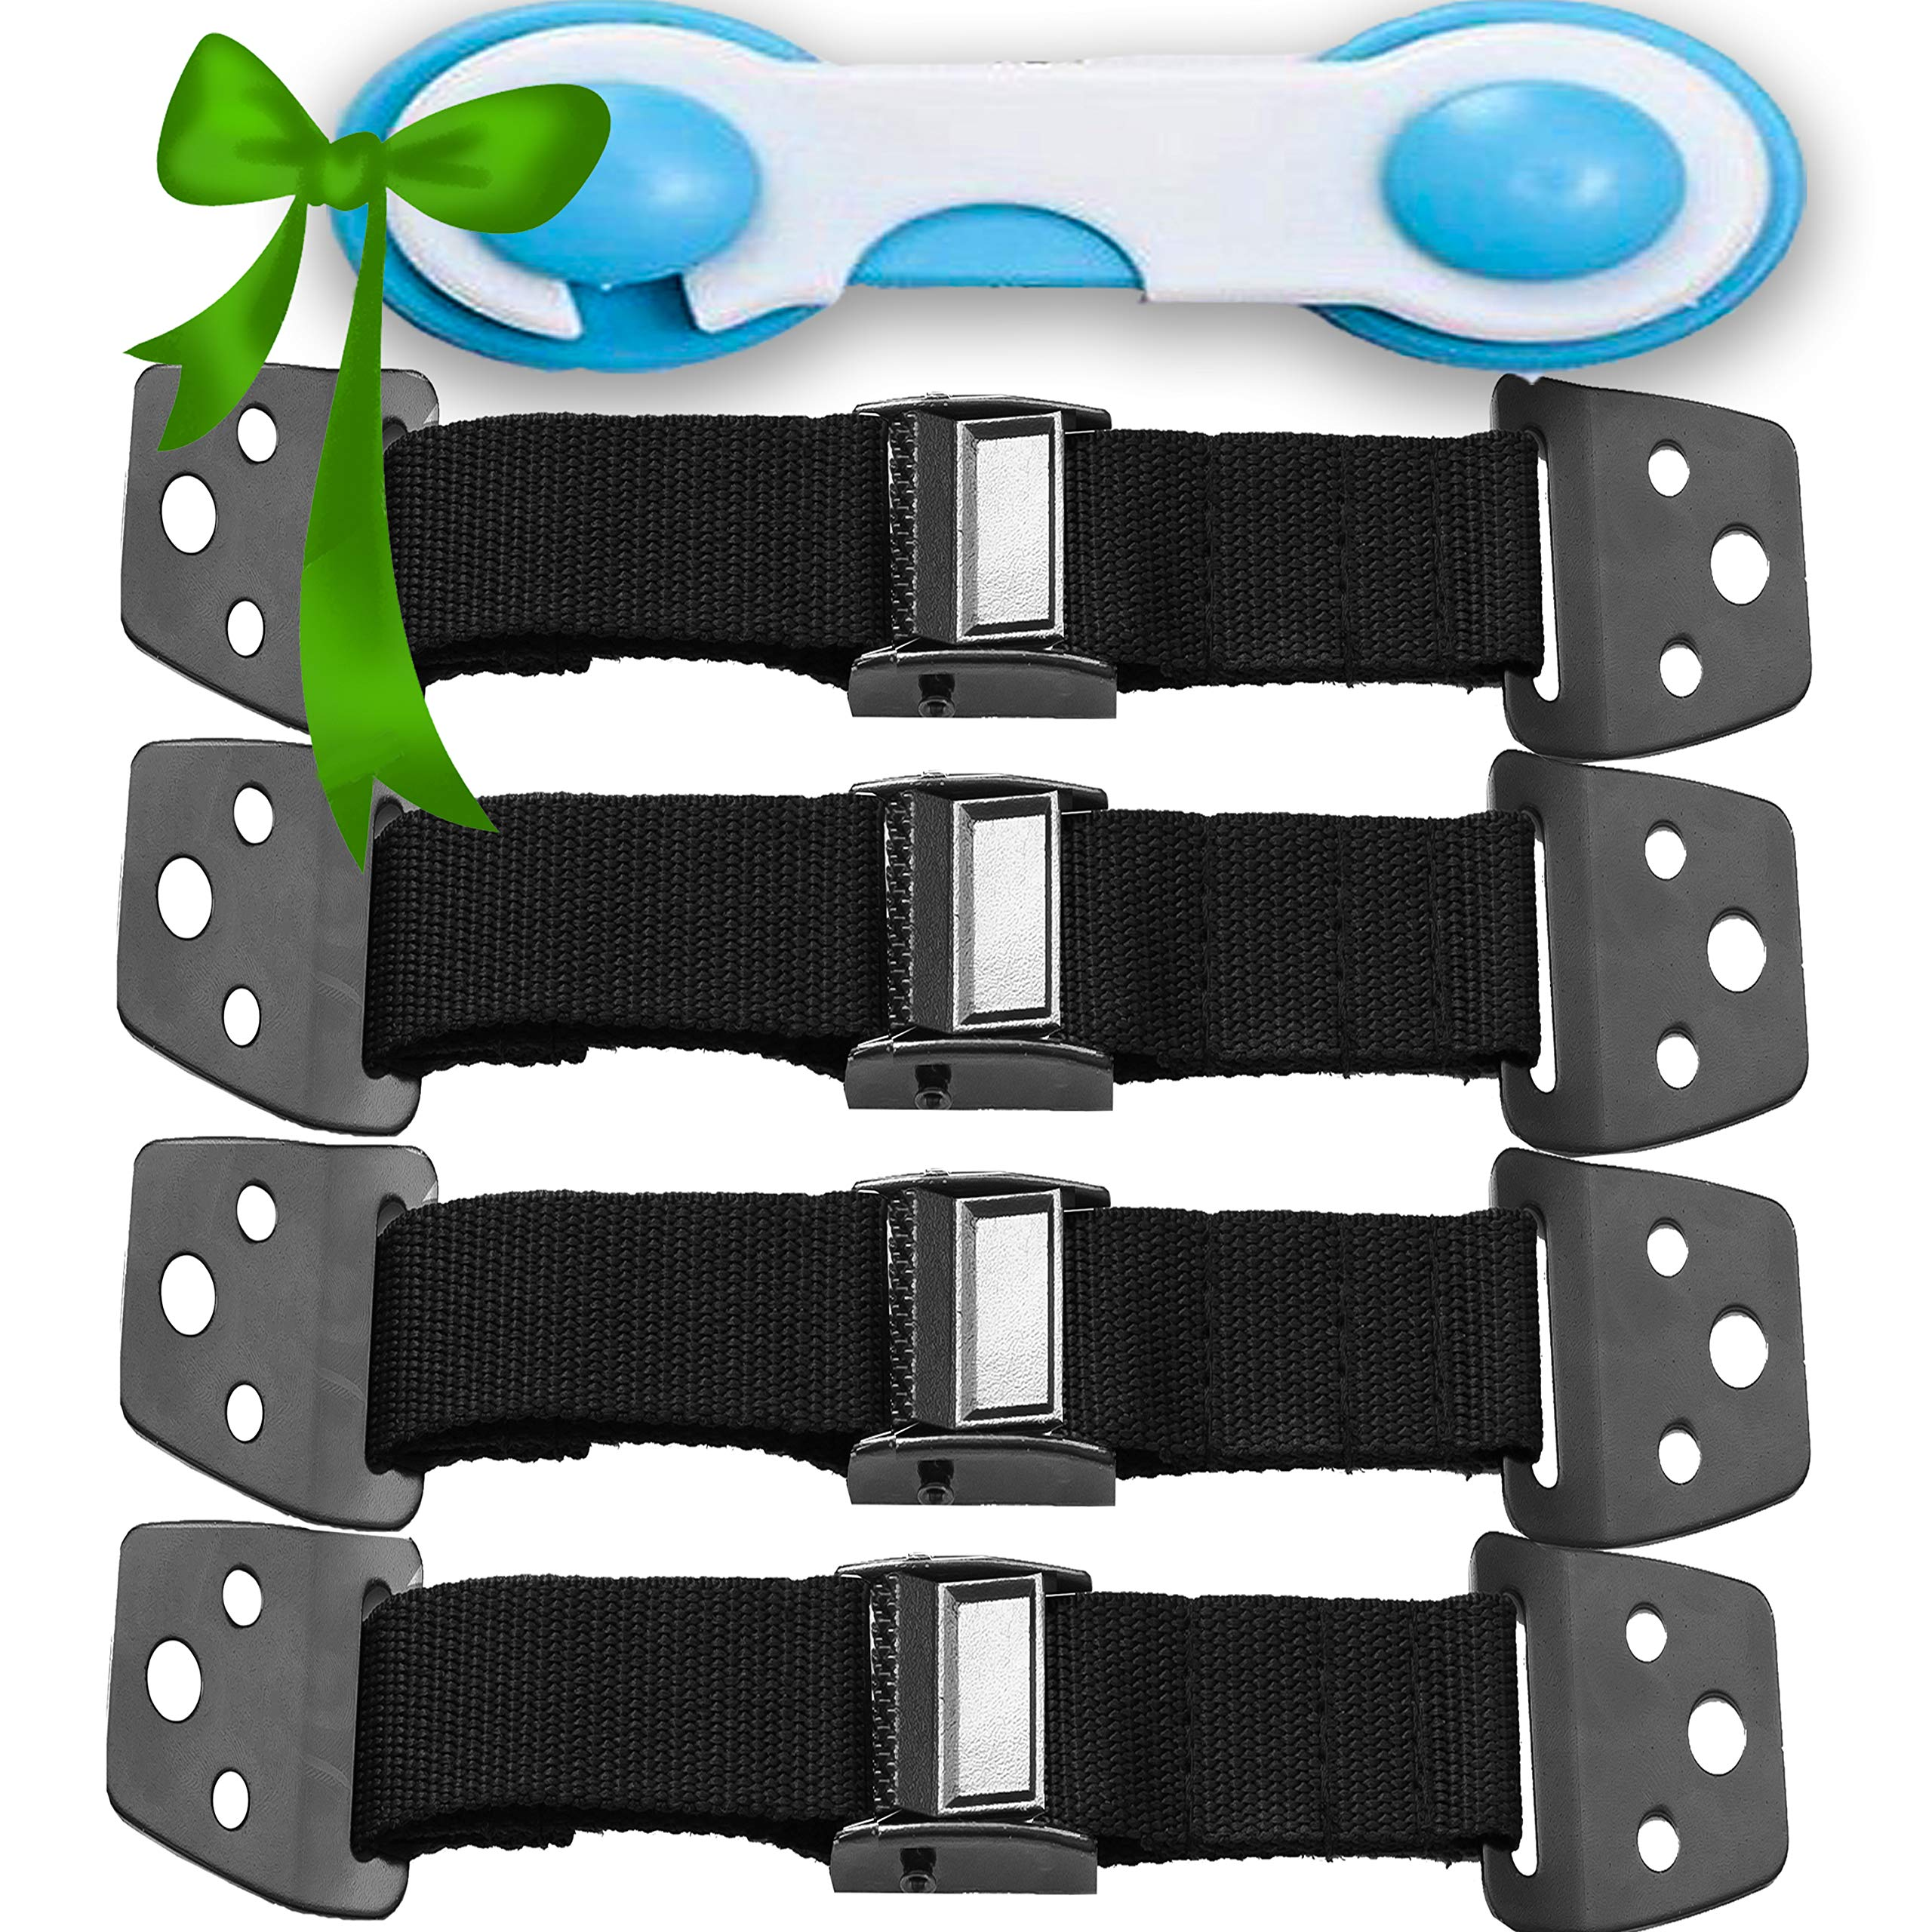 METAL Anti Tip Furniture Kit - TV Straps Safety -4 PACK + GIFT- Earthquake Straps - Furniture Anchors For Baby Proofing - Wall Straps For Flat Screens - Child Proof Mounting Straps, Childproof Antitip by Family Care